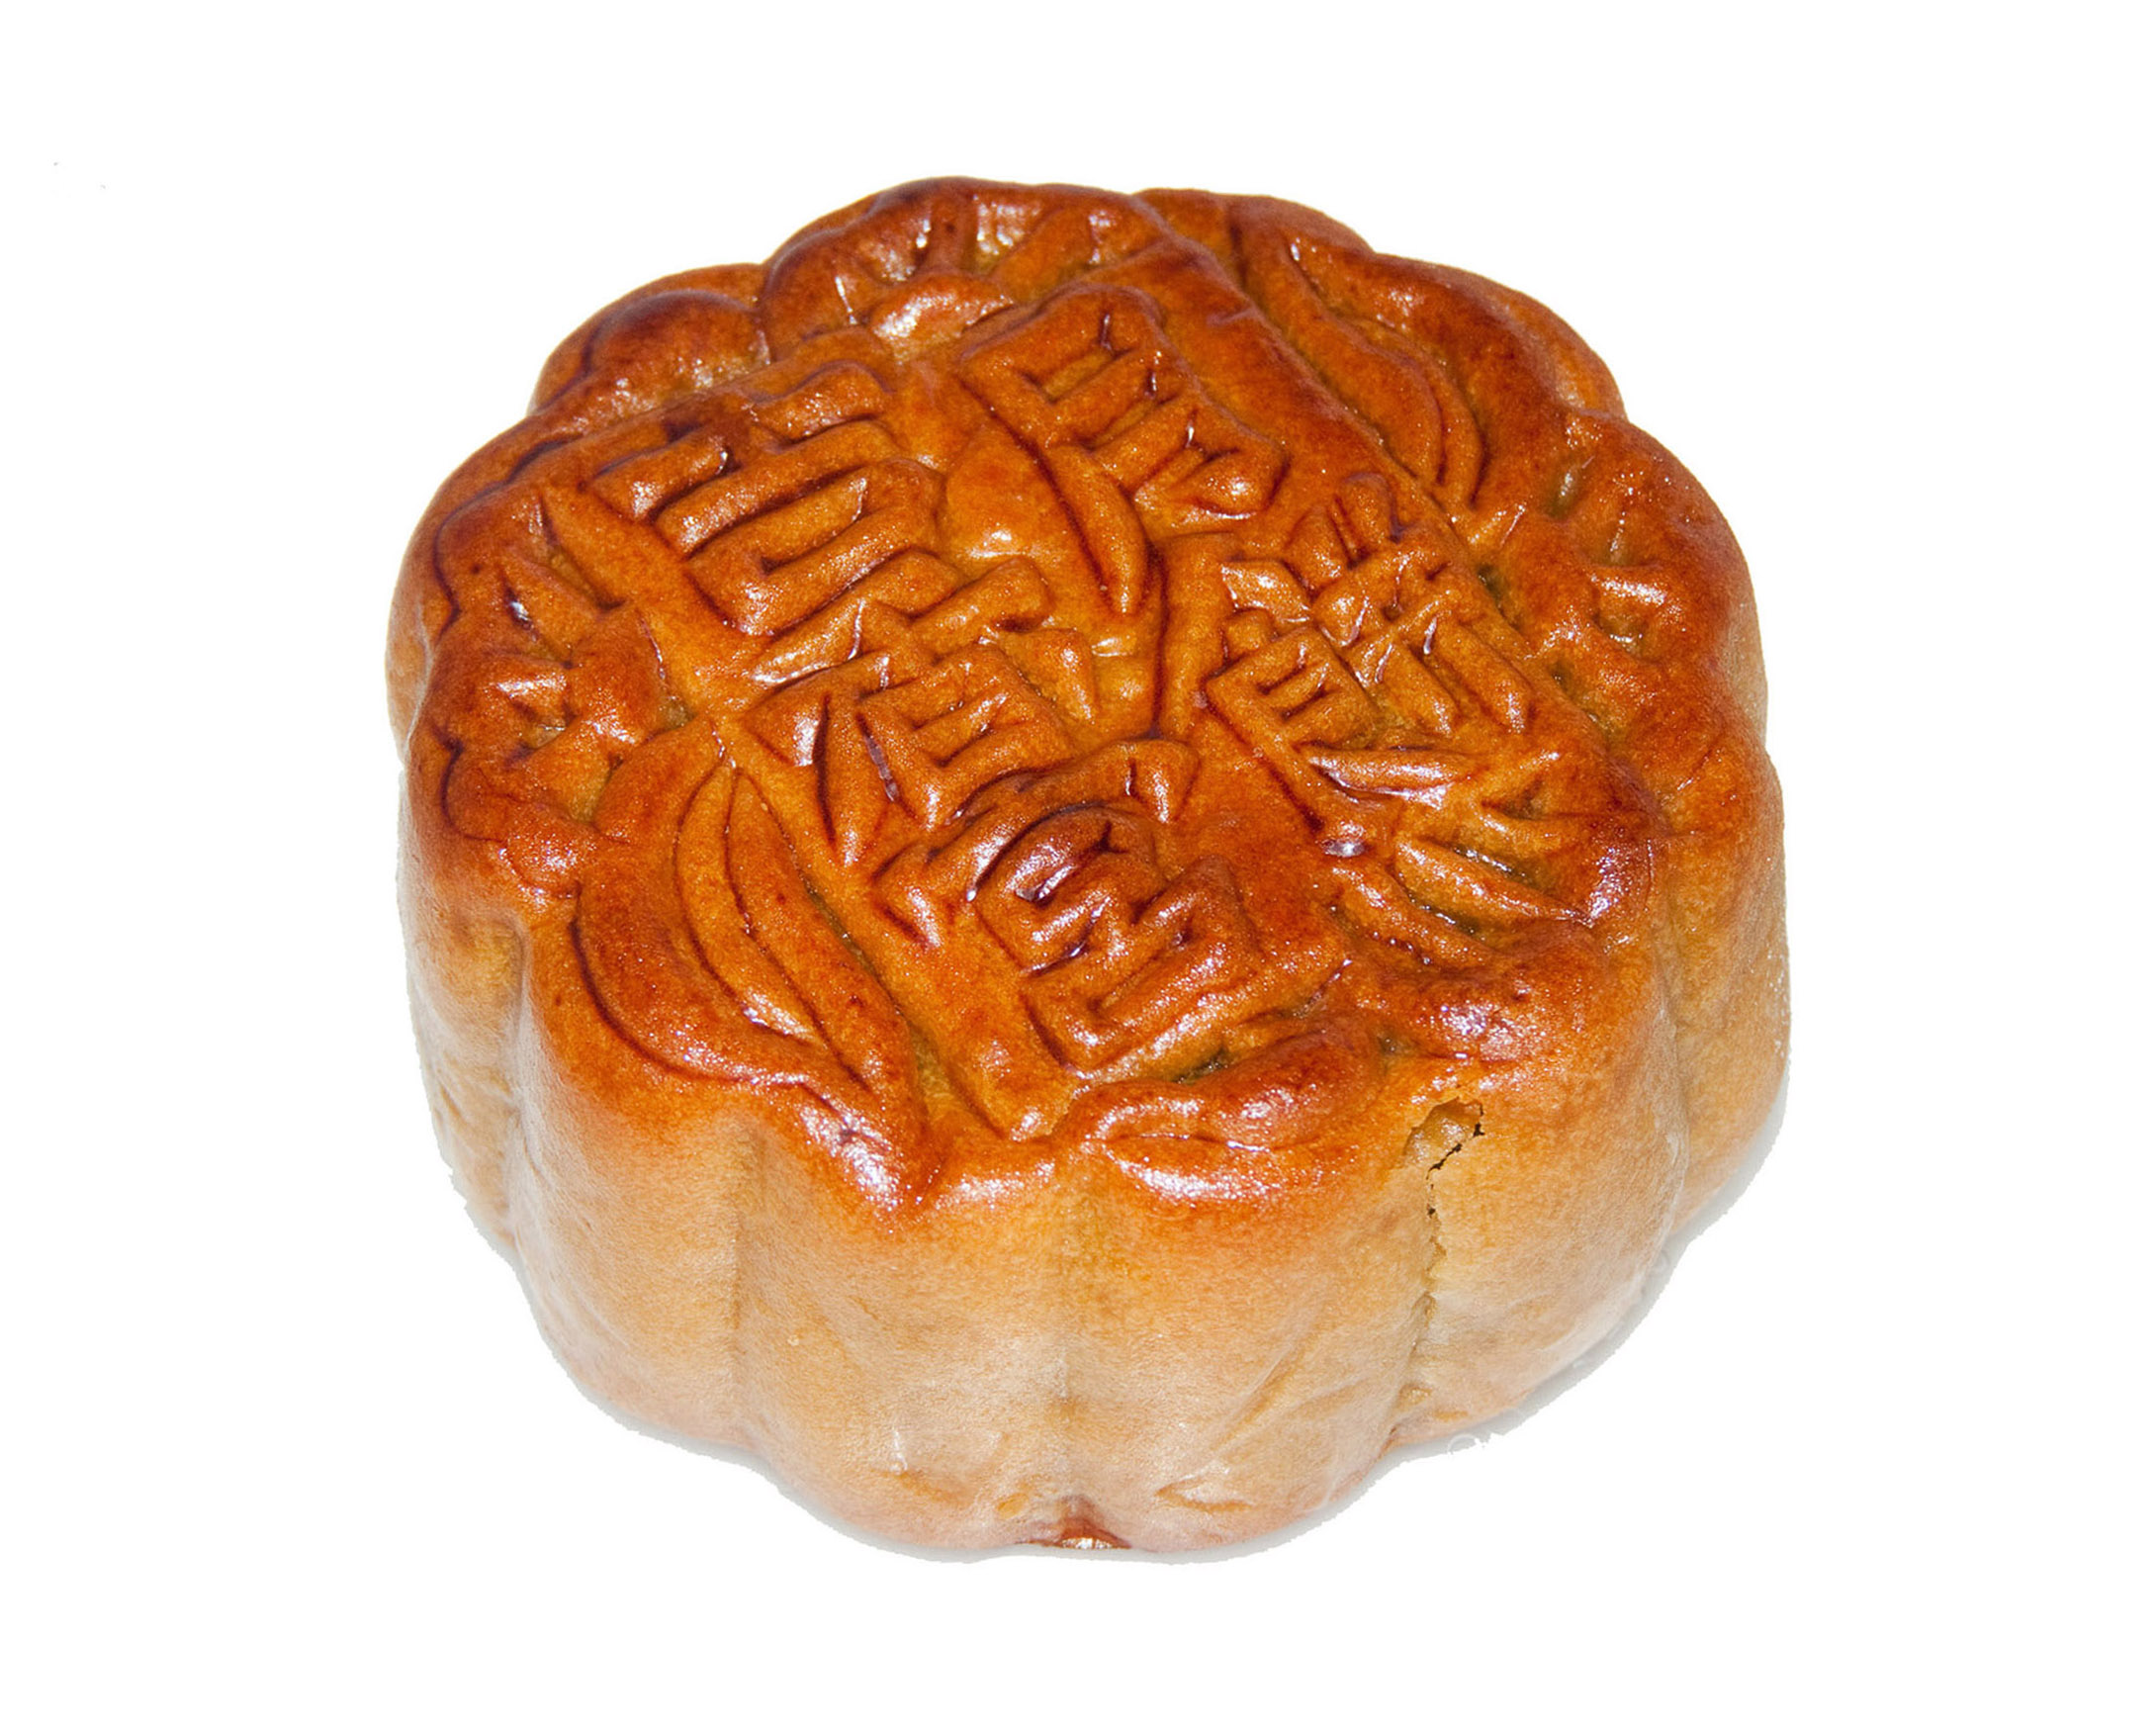 File:Mooncake.jpg - Wikipedia, the free encyclopedia